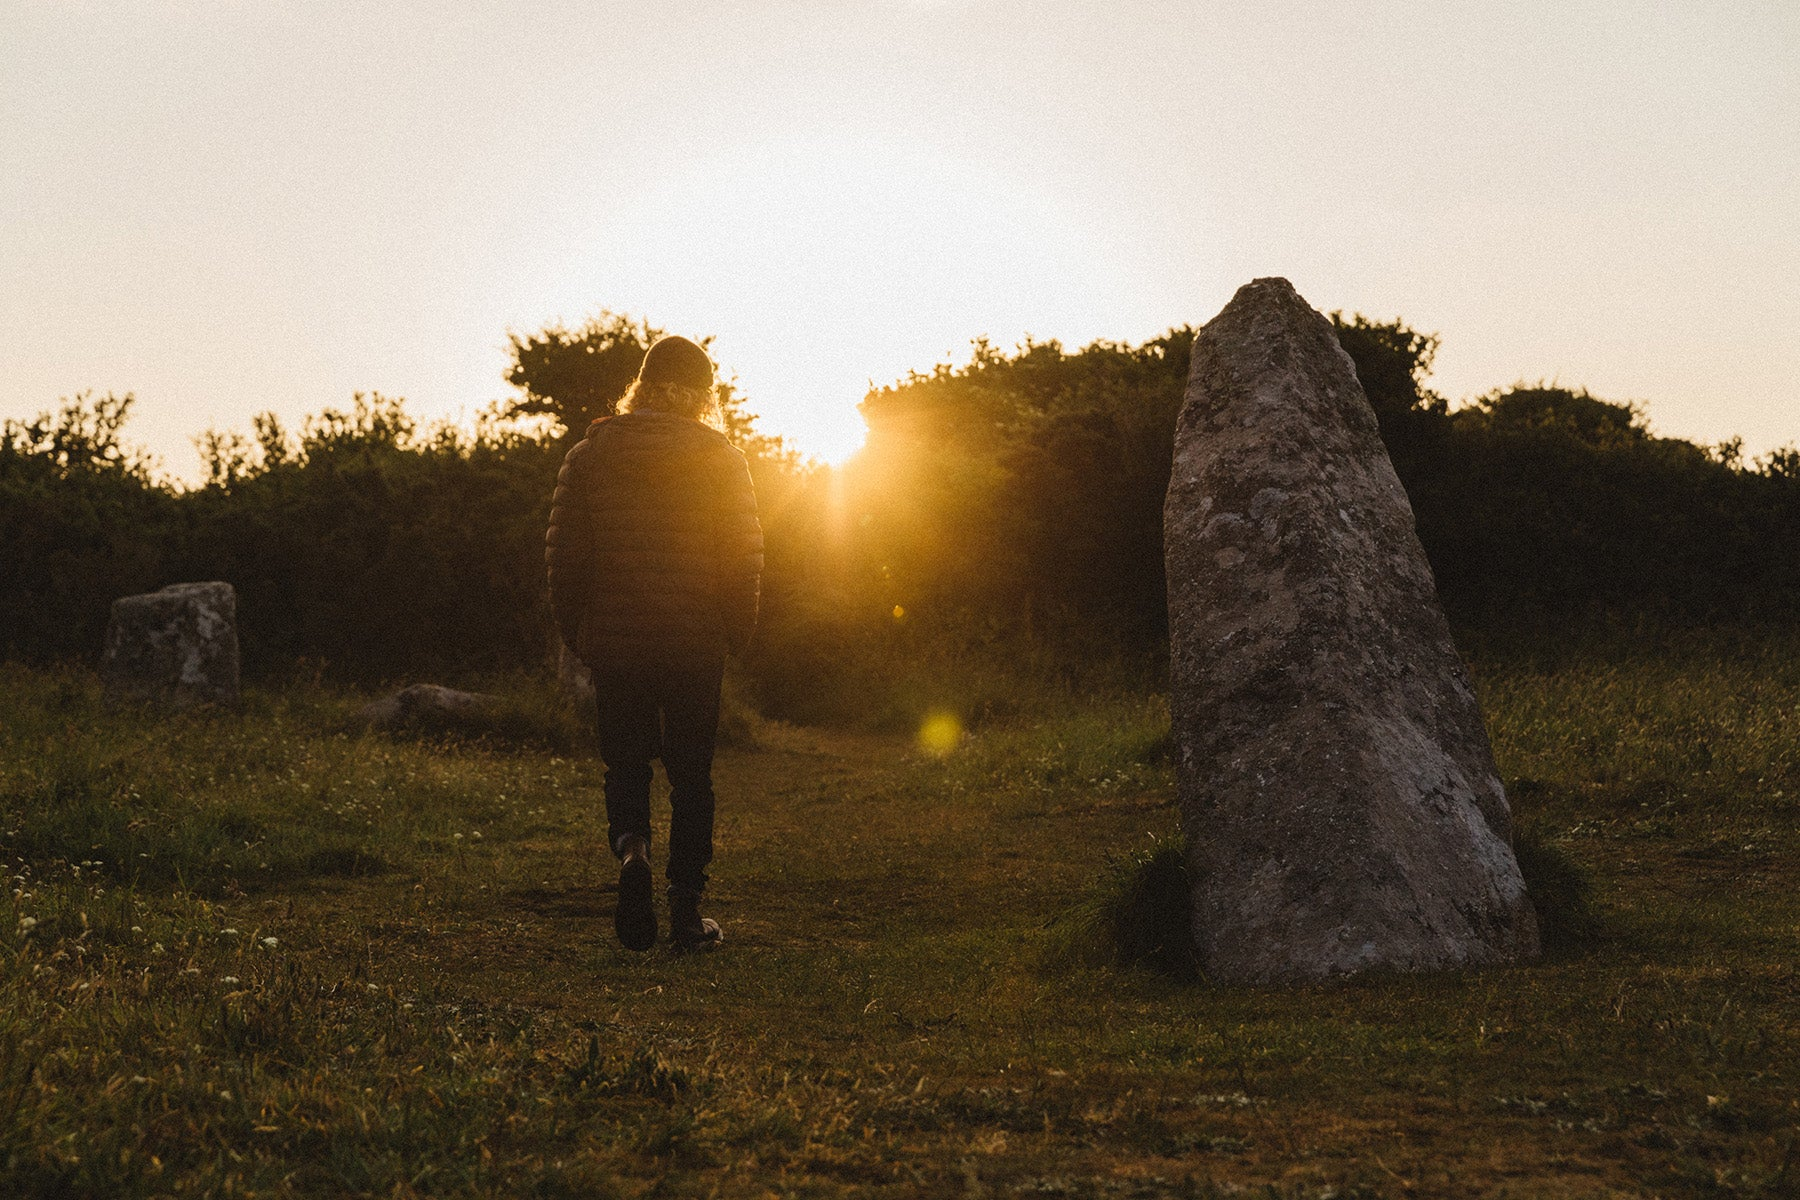 Pete Geall next to the central standing stone at Boscawen-ûn stone circle as the sun peeks over the horizon